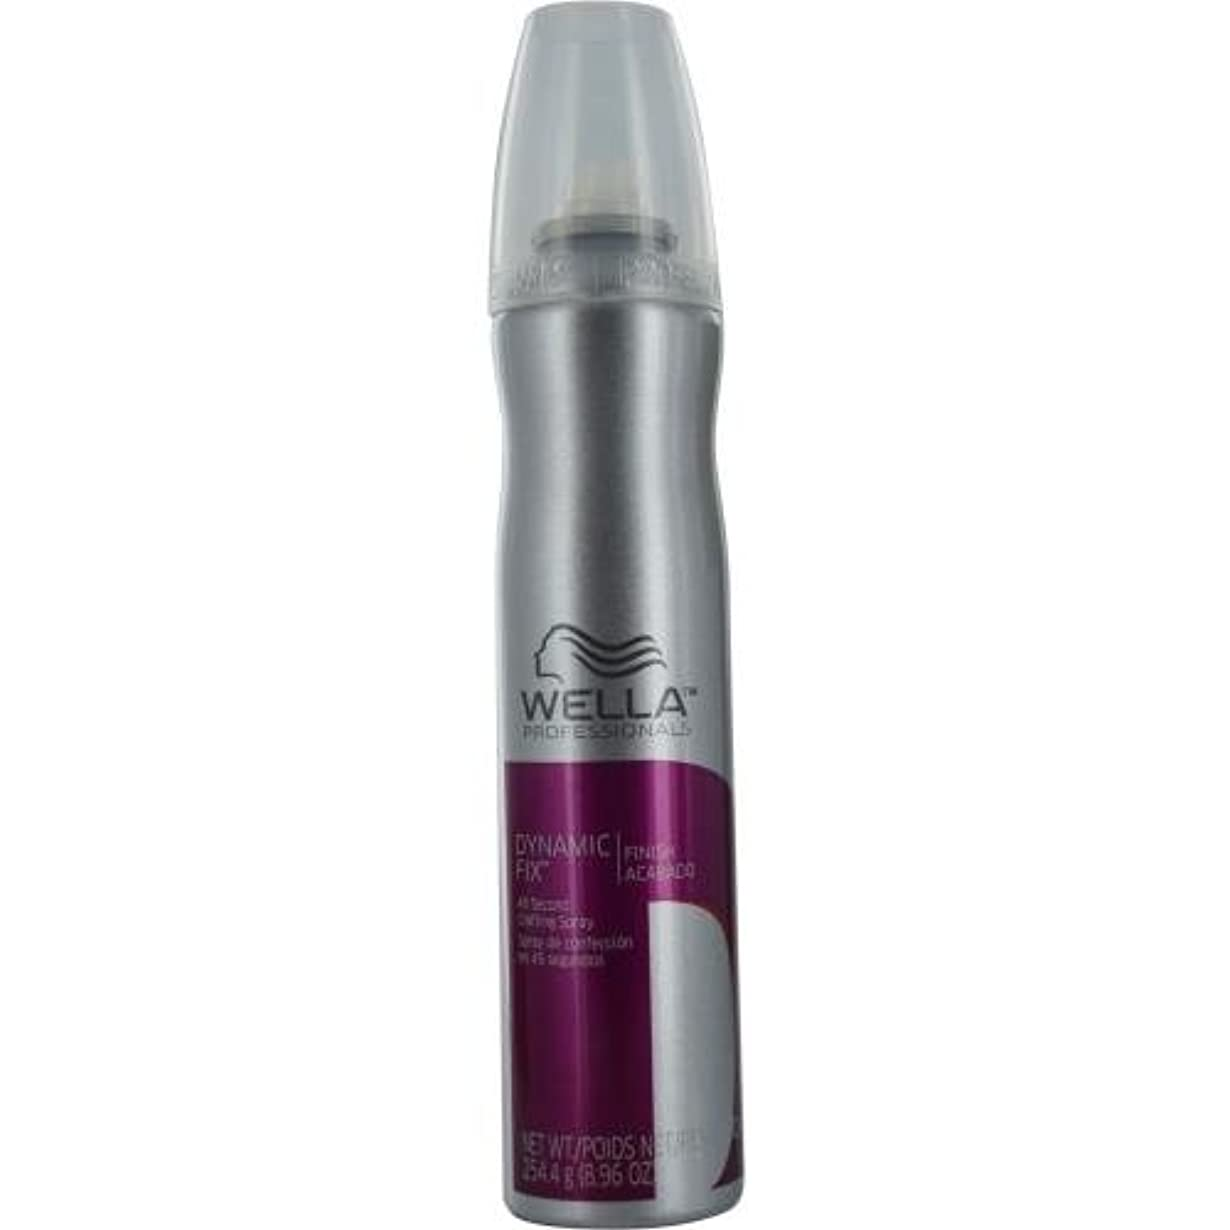 by Wella DYNAMIC FIX HAIR SPRAY HOLD LEVEL 2- 8.96 OZ by WELLA